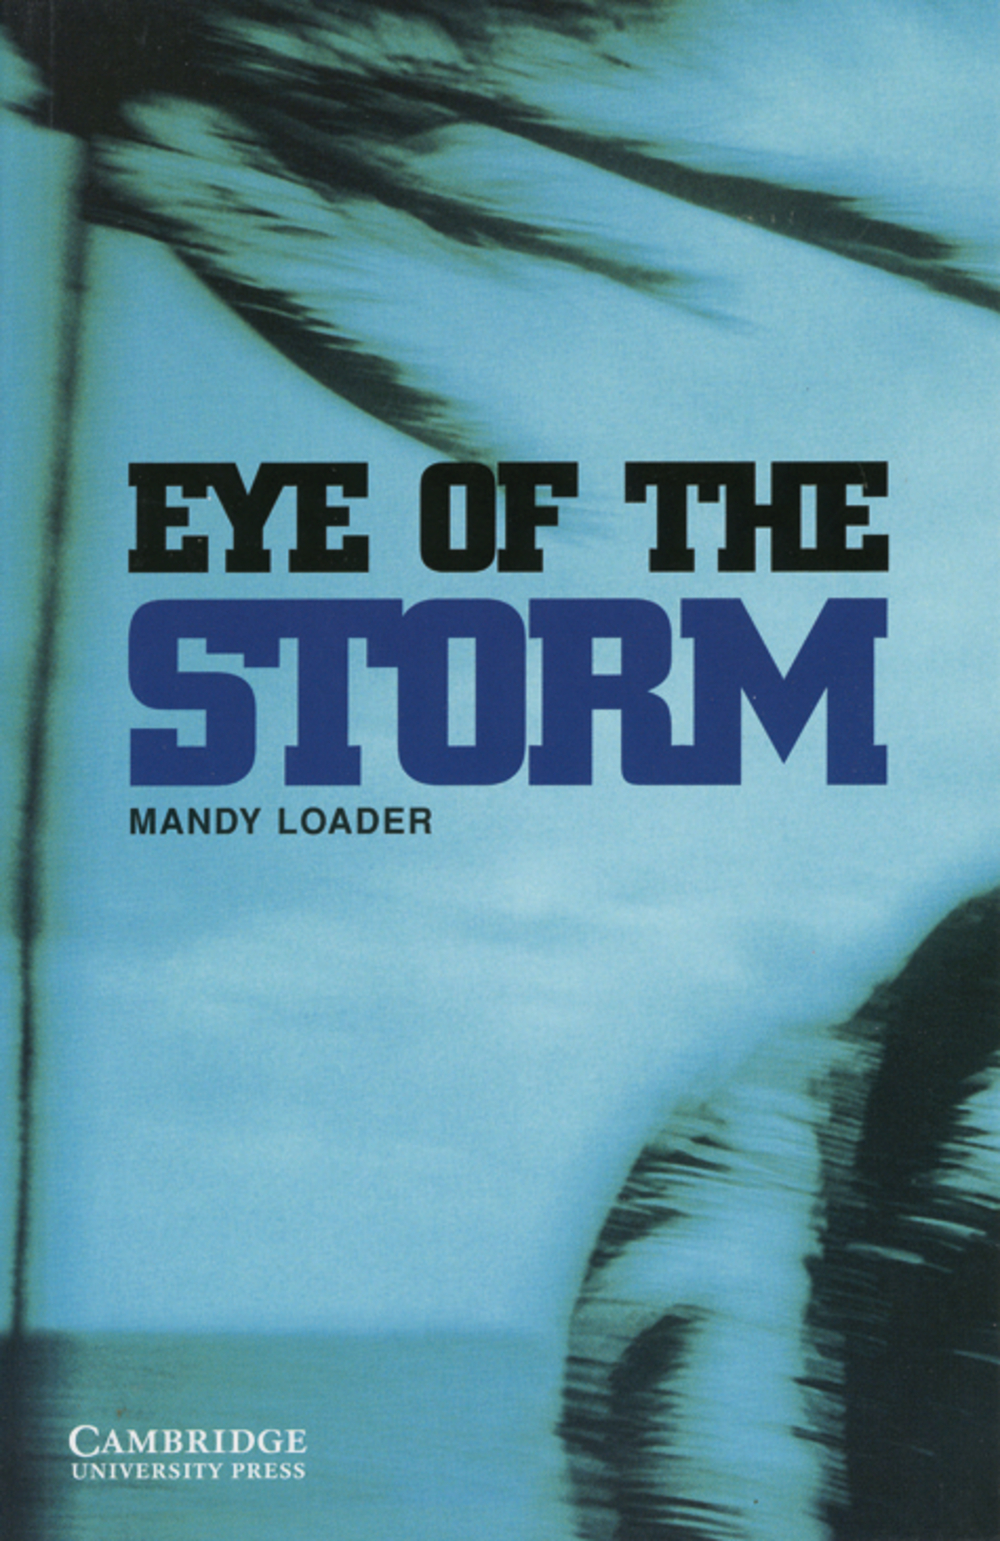 The Eye of the Storm: Level 3 - Mandy Loader